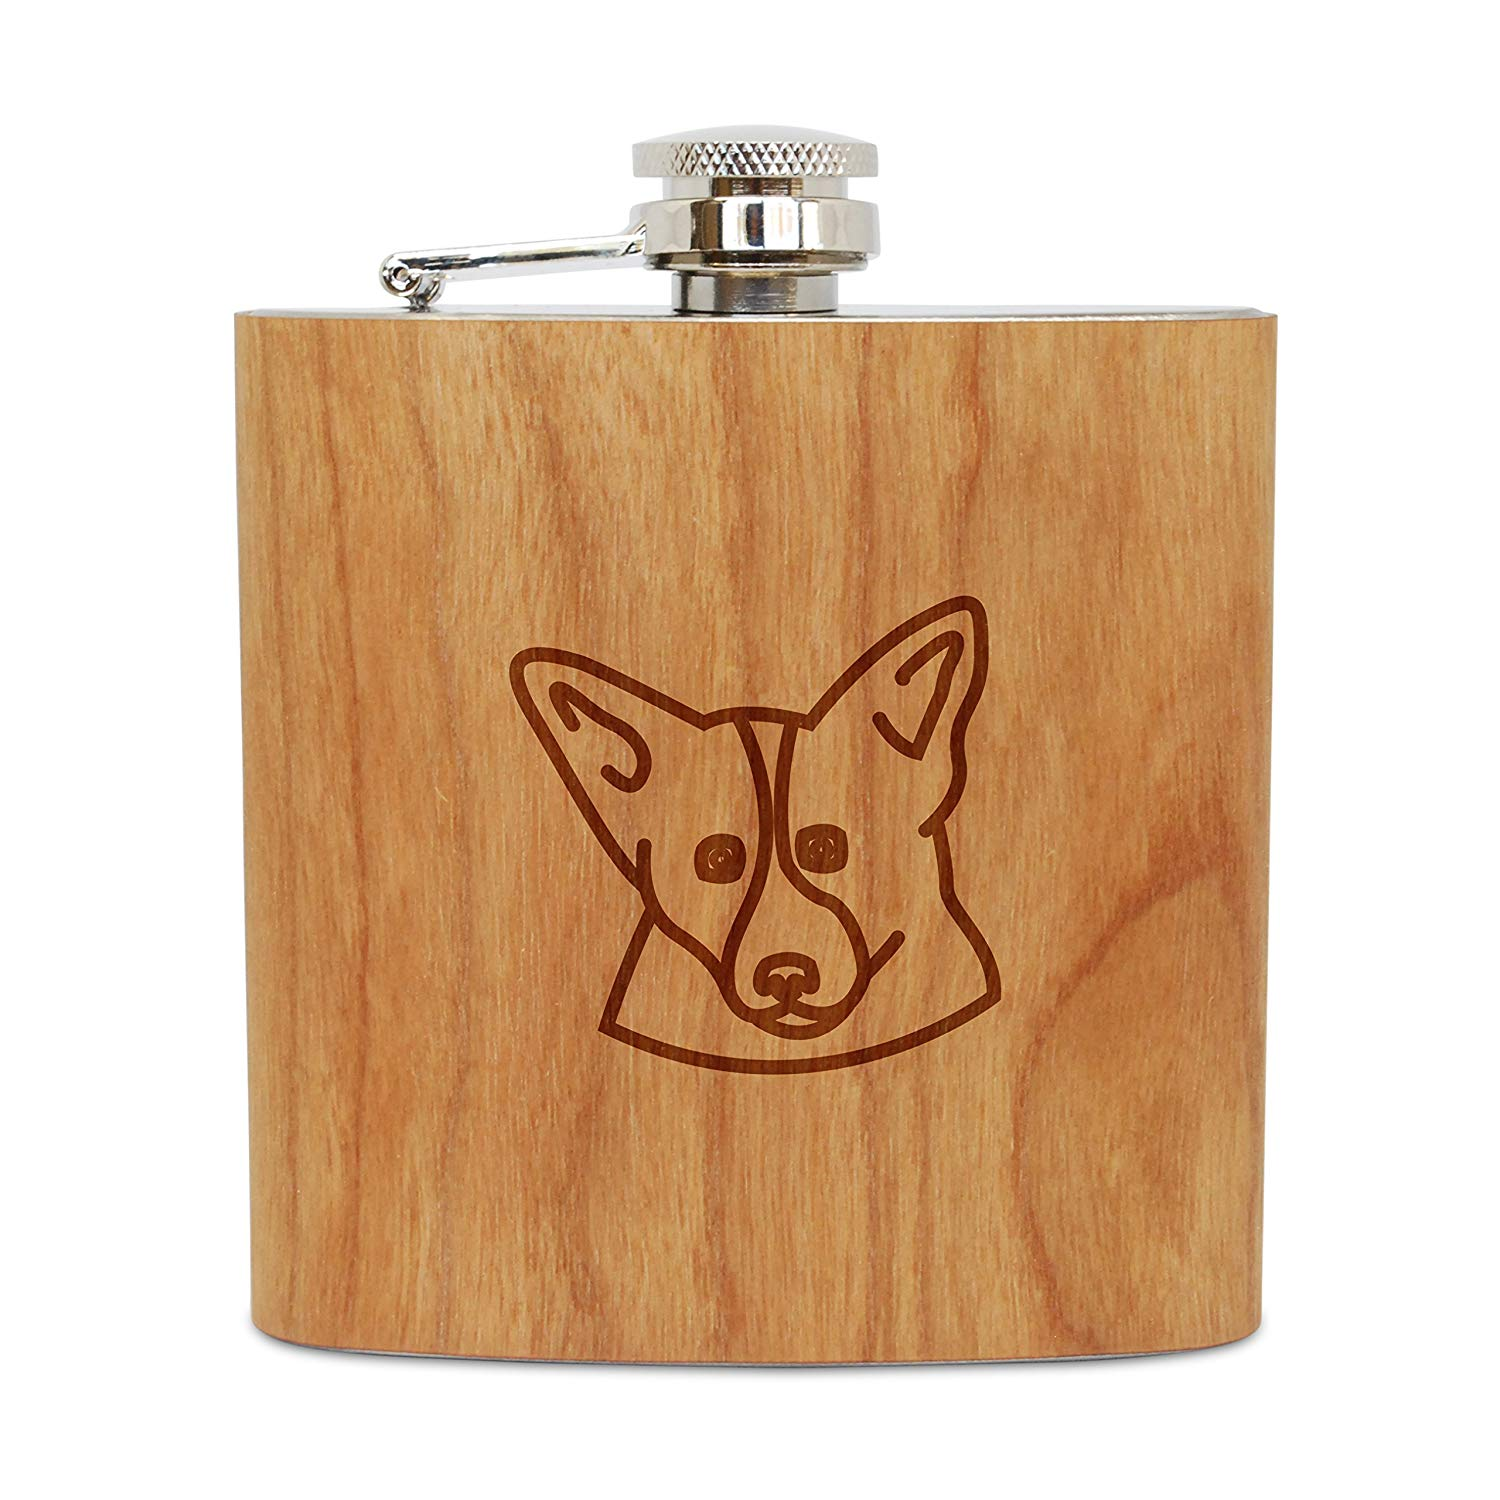 WOODEN ACCESSORIES COMPANY Cherry Wood Flask With Stainless Steel Body - Laser Engraved Flask With Corgi Design - 6 Oz Wood Hip Flask Handmade In USA